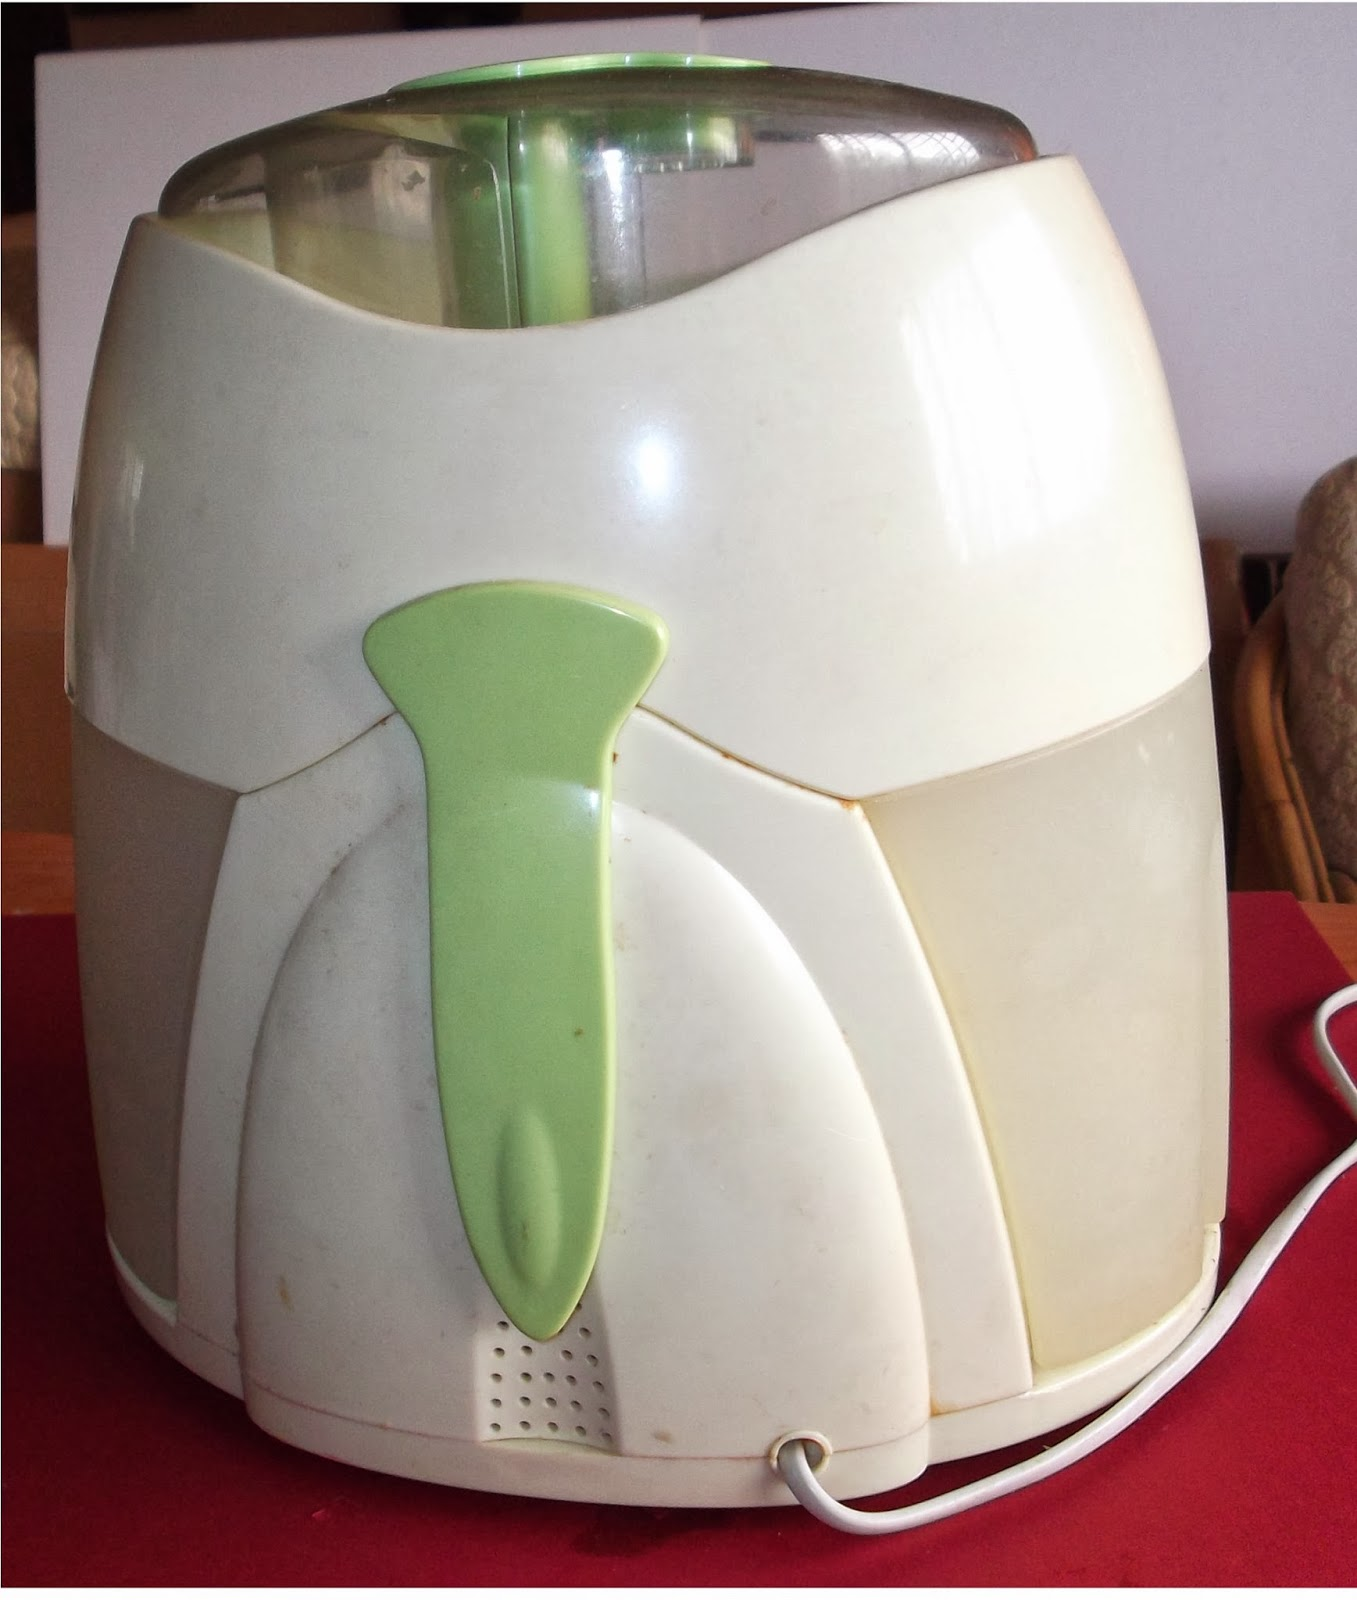 Simply Cooking And Health Choosing A Juicer